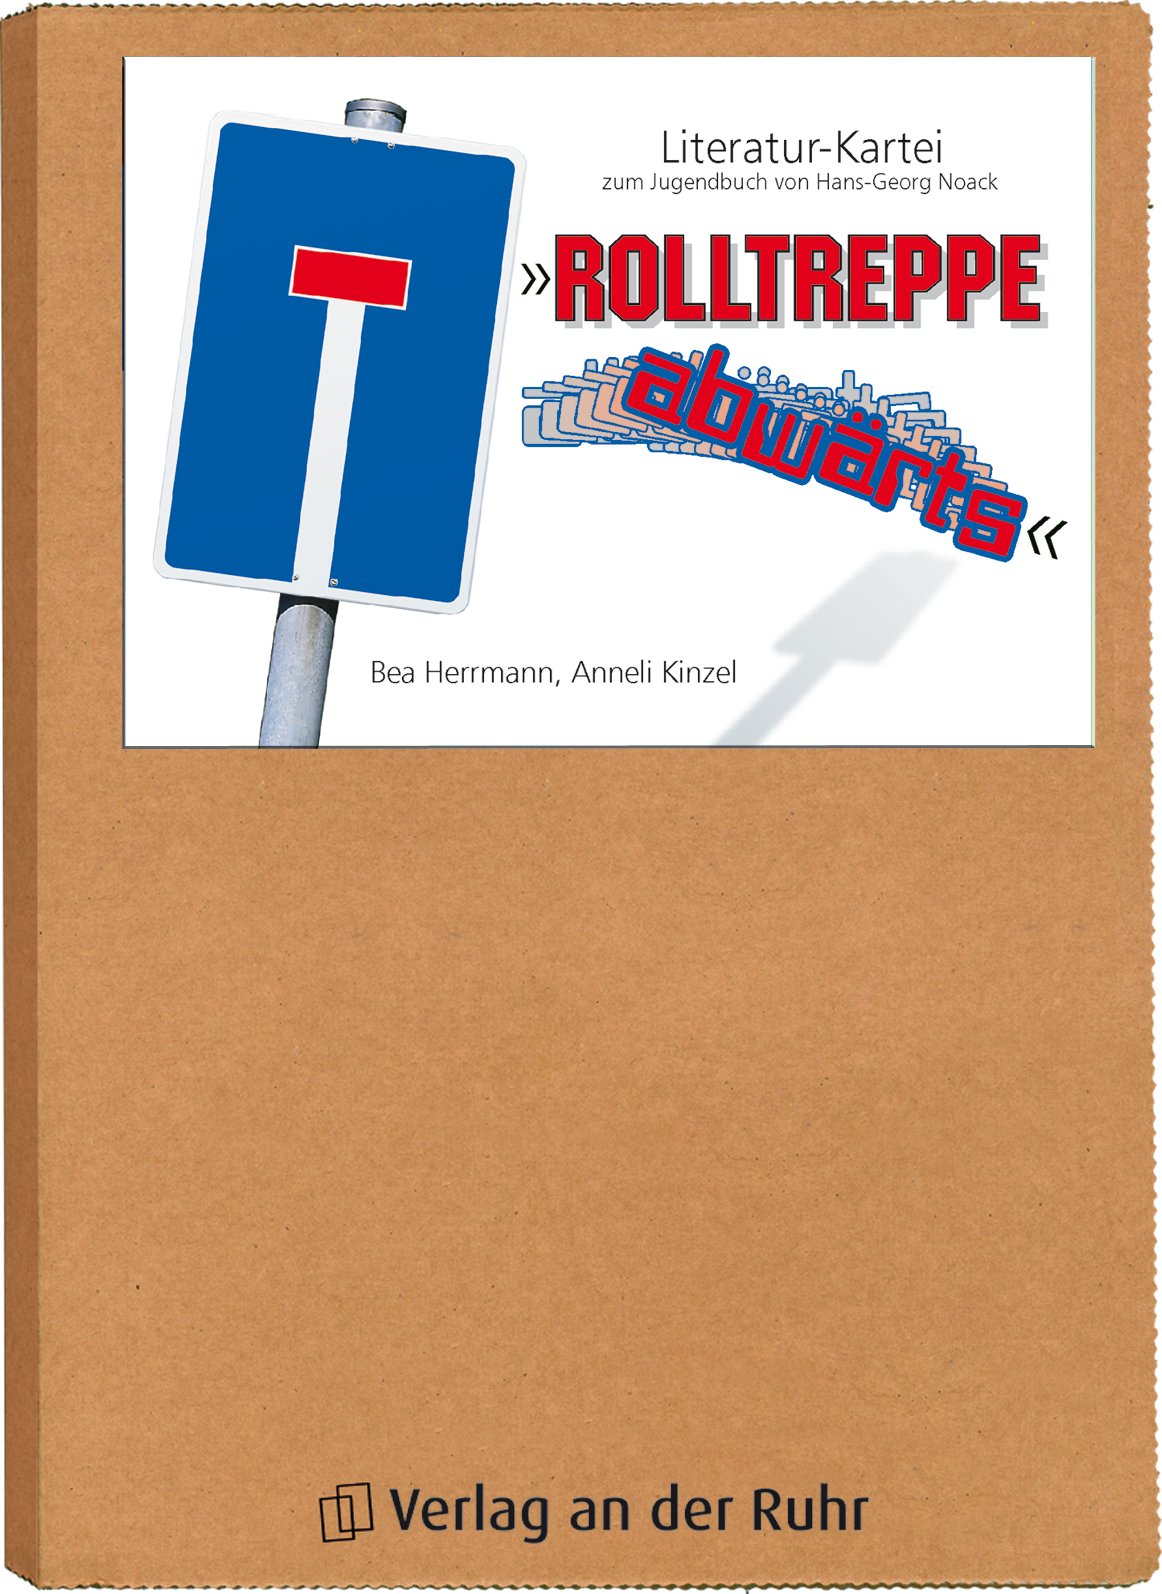 Rolltreppe Puzzle